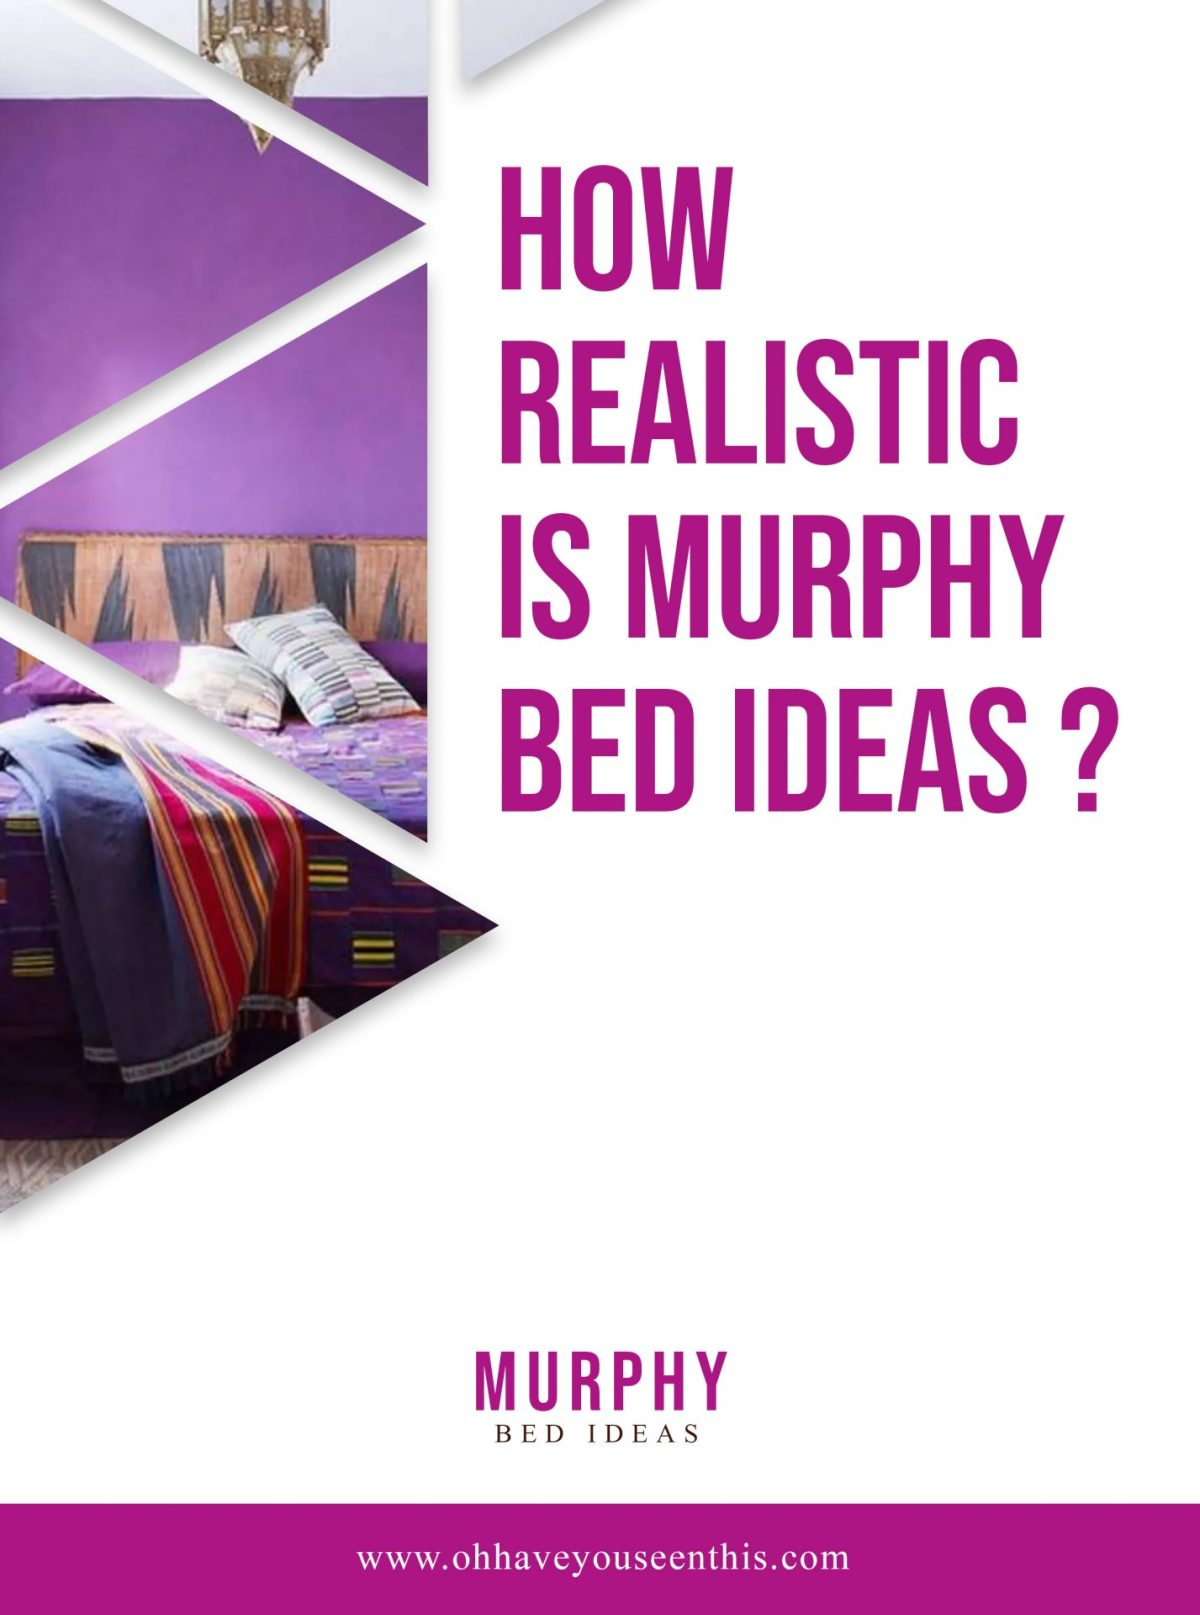 How Realistic Is Murphy Bed Ideas